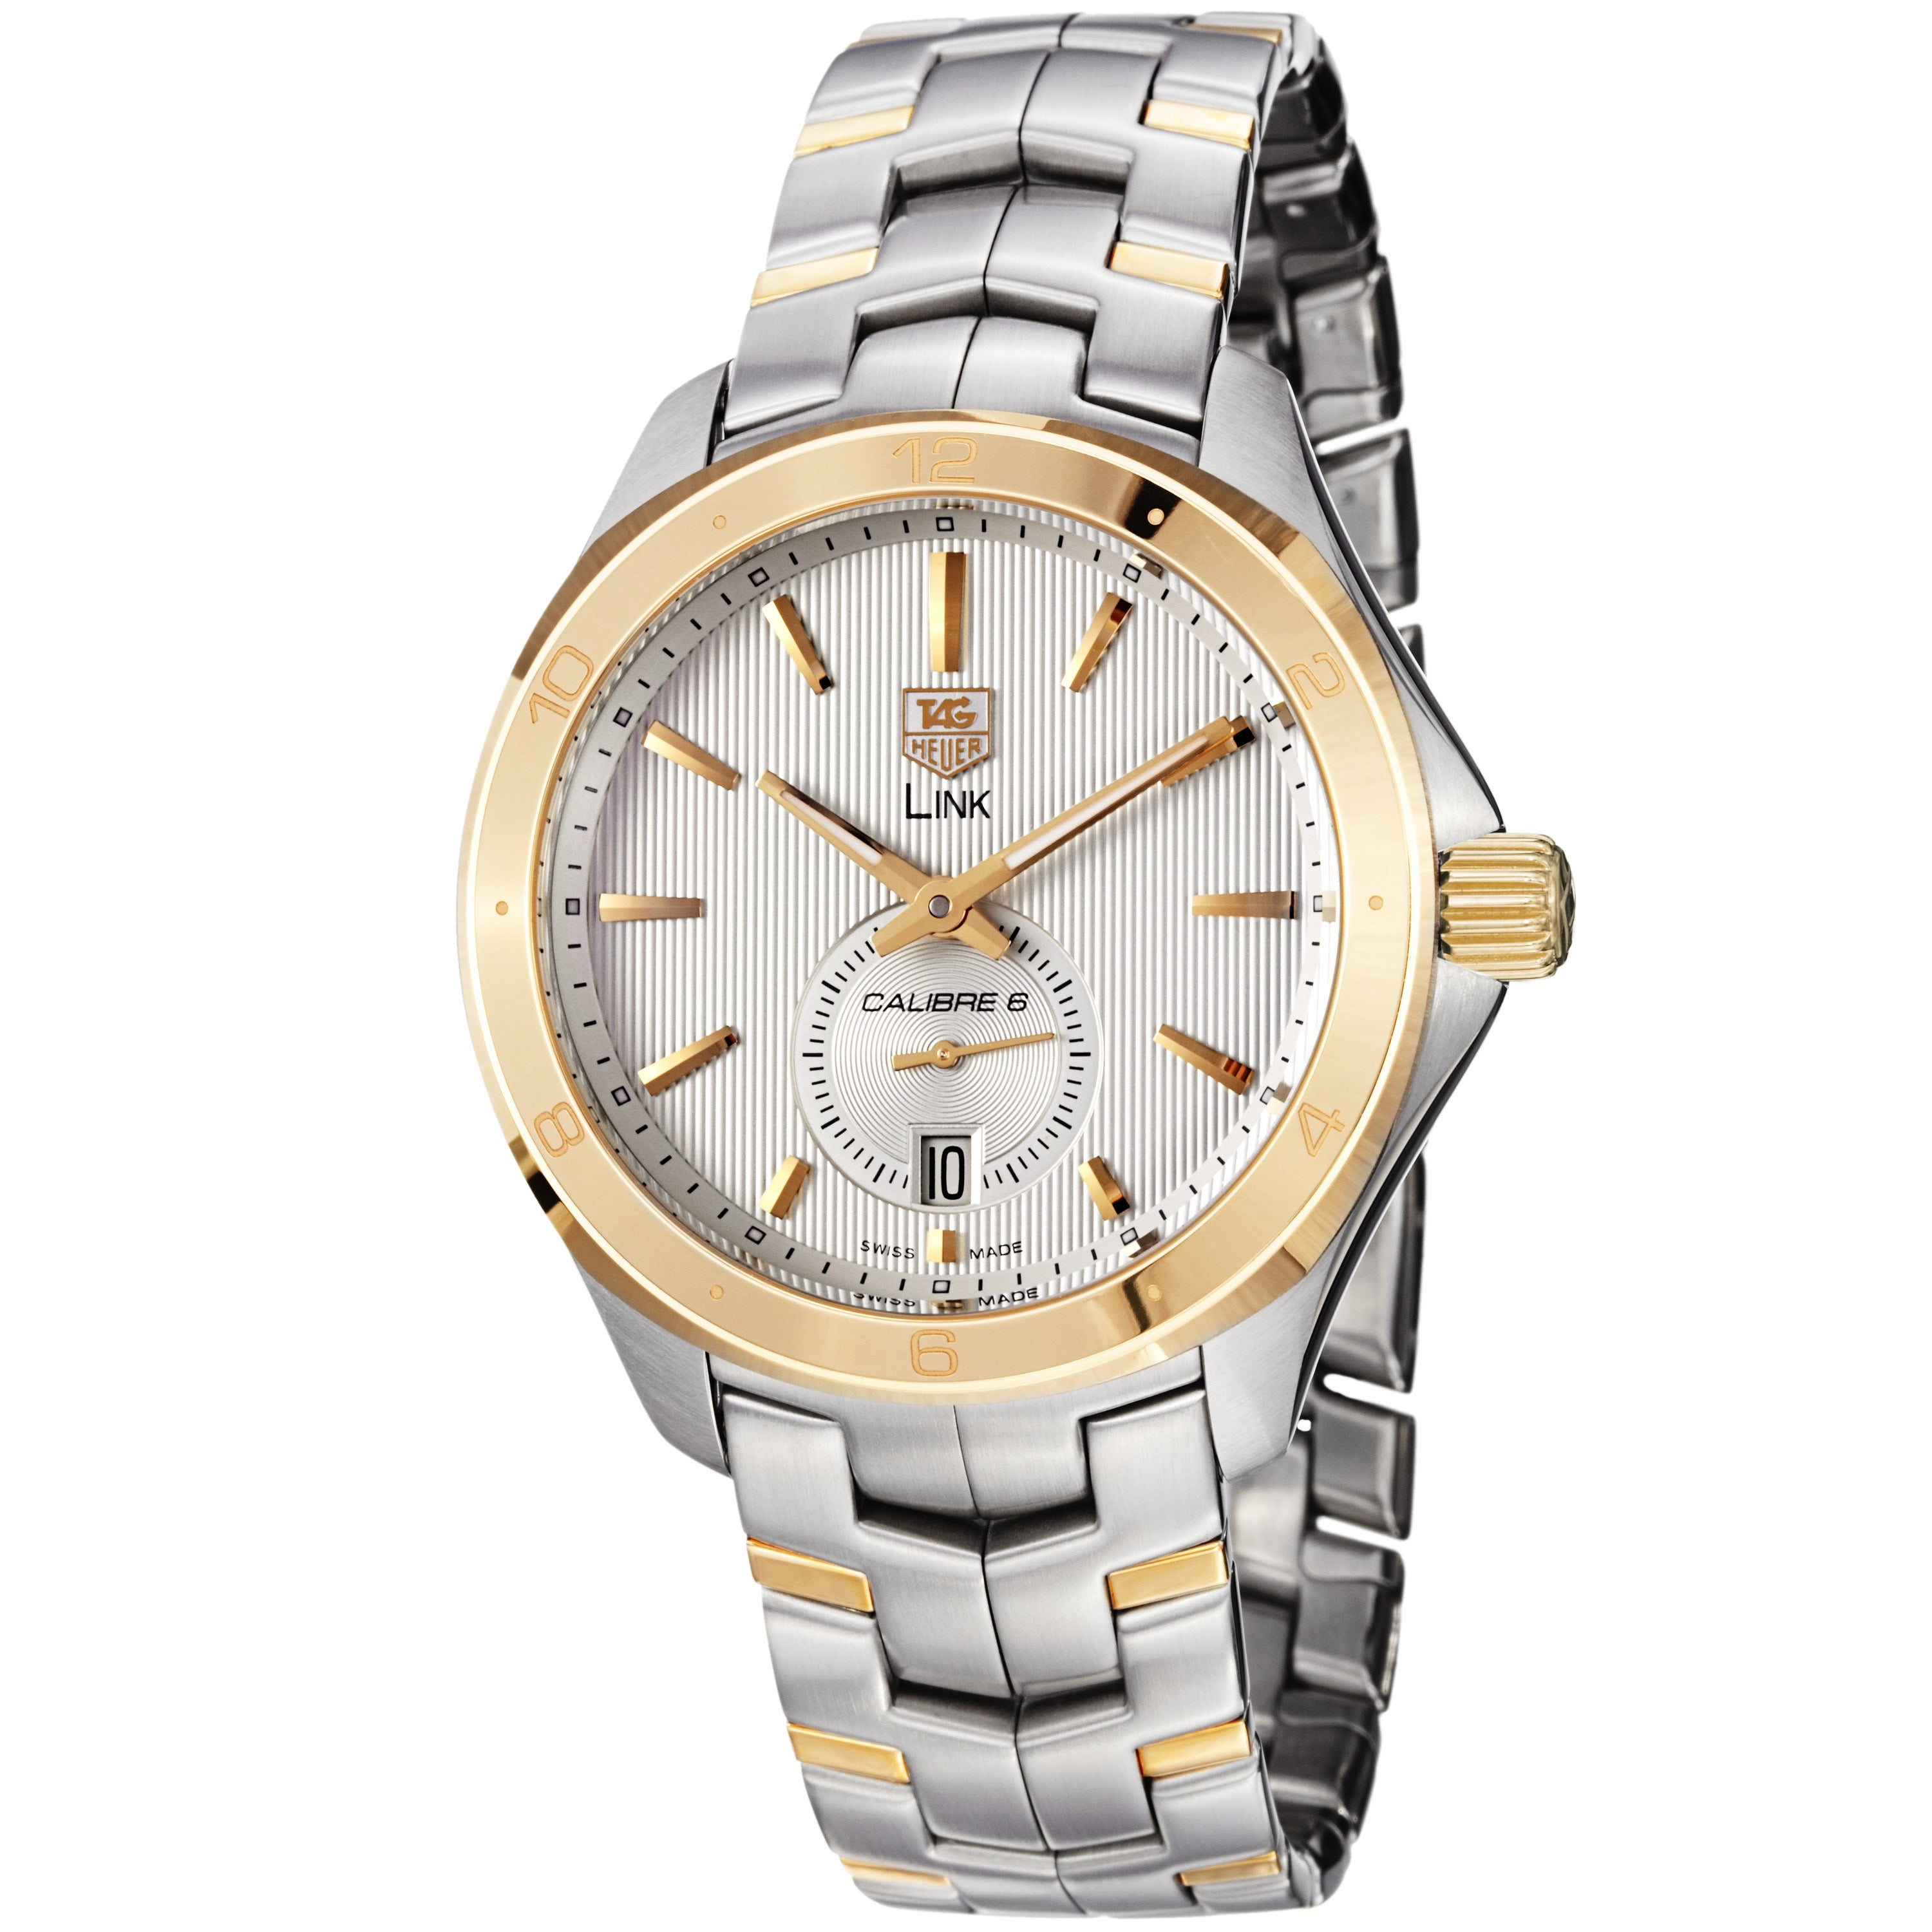 Tag Heuer Men's WAT2150.BB0953 'Link' Silver Dial Two Tone Stainless Steel Watch